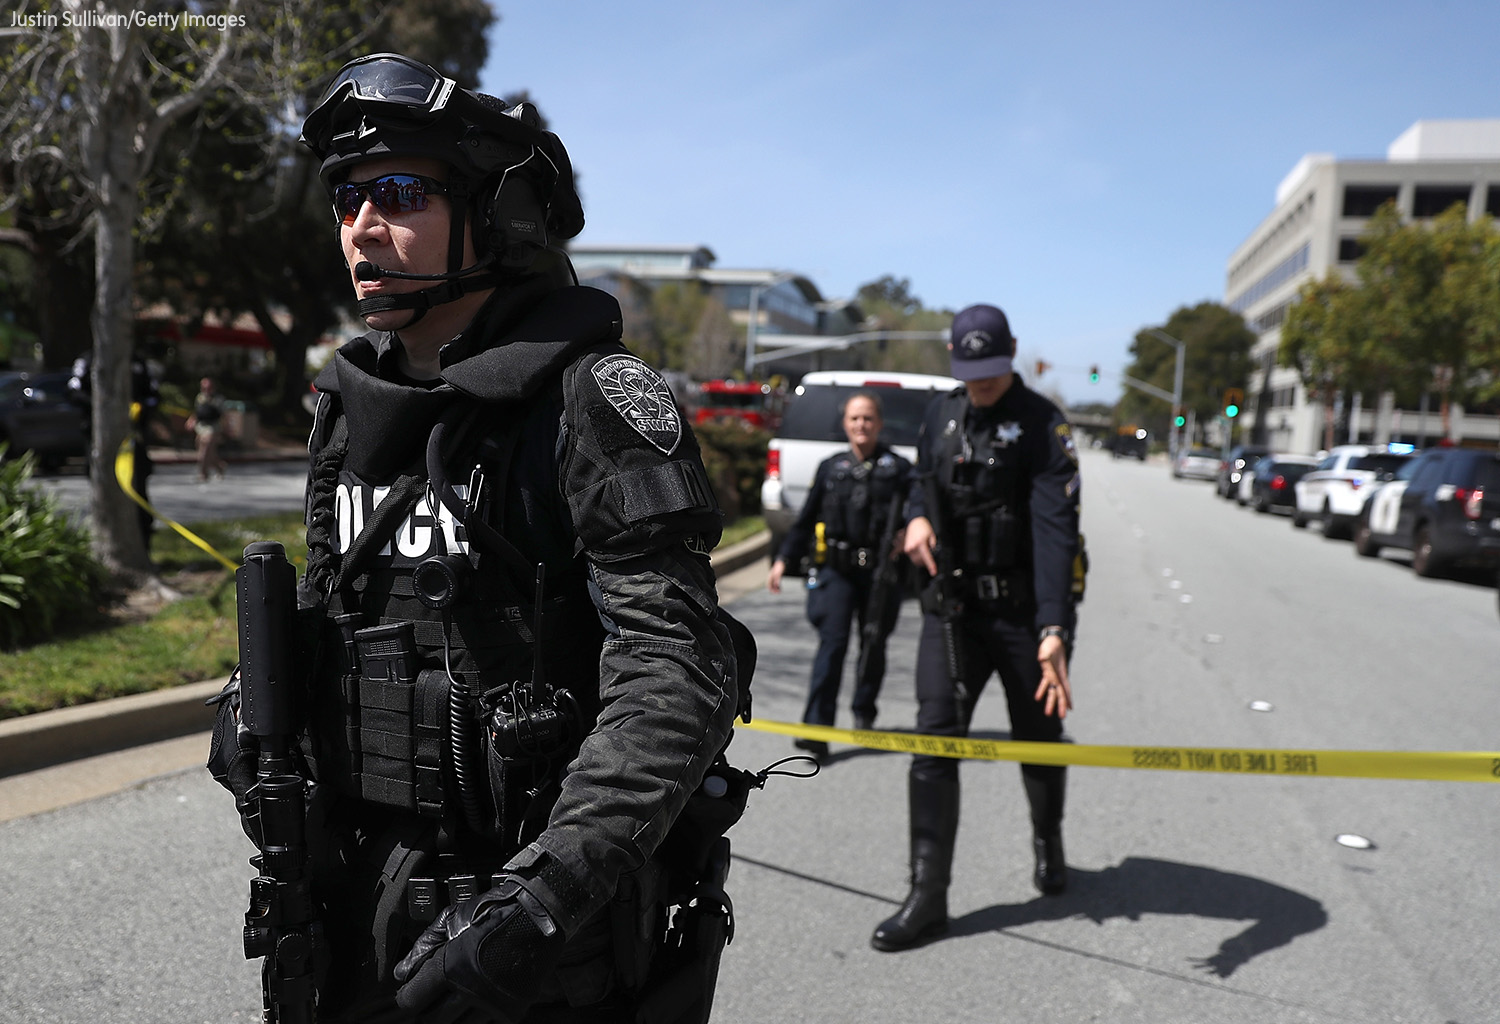 <div class='meta'><div class='origin-logo' data-origin='none'></div><span class='caption-text' data-credit='Justin Sullivan/Getty Images'>Law enforcement stands watch outside of the YouTube headquarters on April 3, 2018 in San Bruno, California.</span></div>